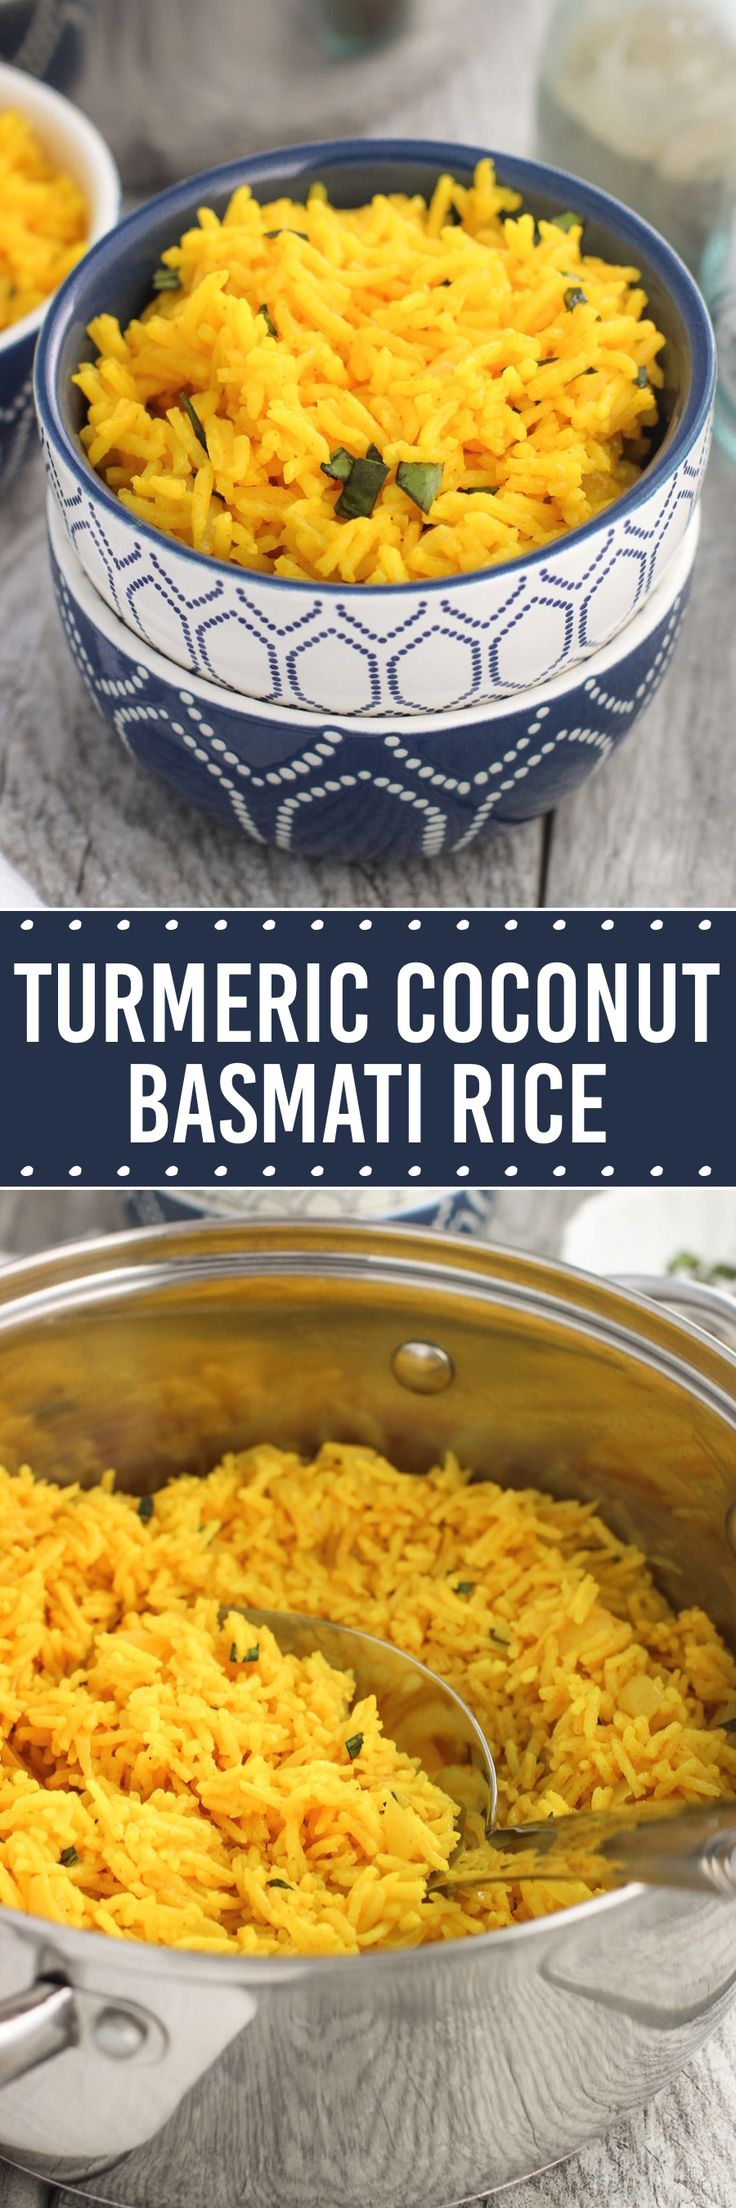 Turmeric Coconut Basmati Rice - a flavorful side dish made with onion, ginger, garlic, and basil - all cooked in a coconut milk mixture.